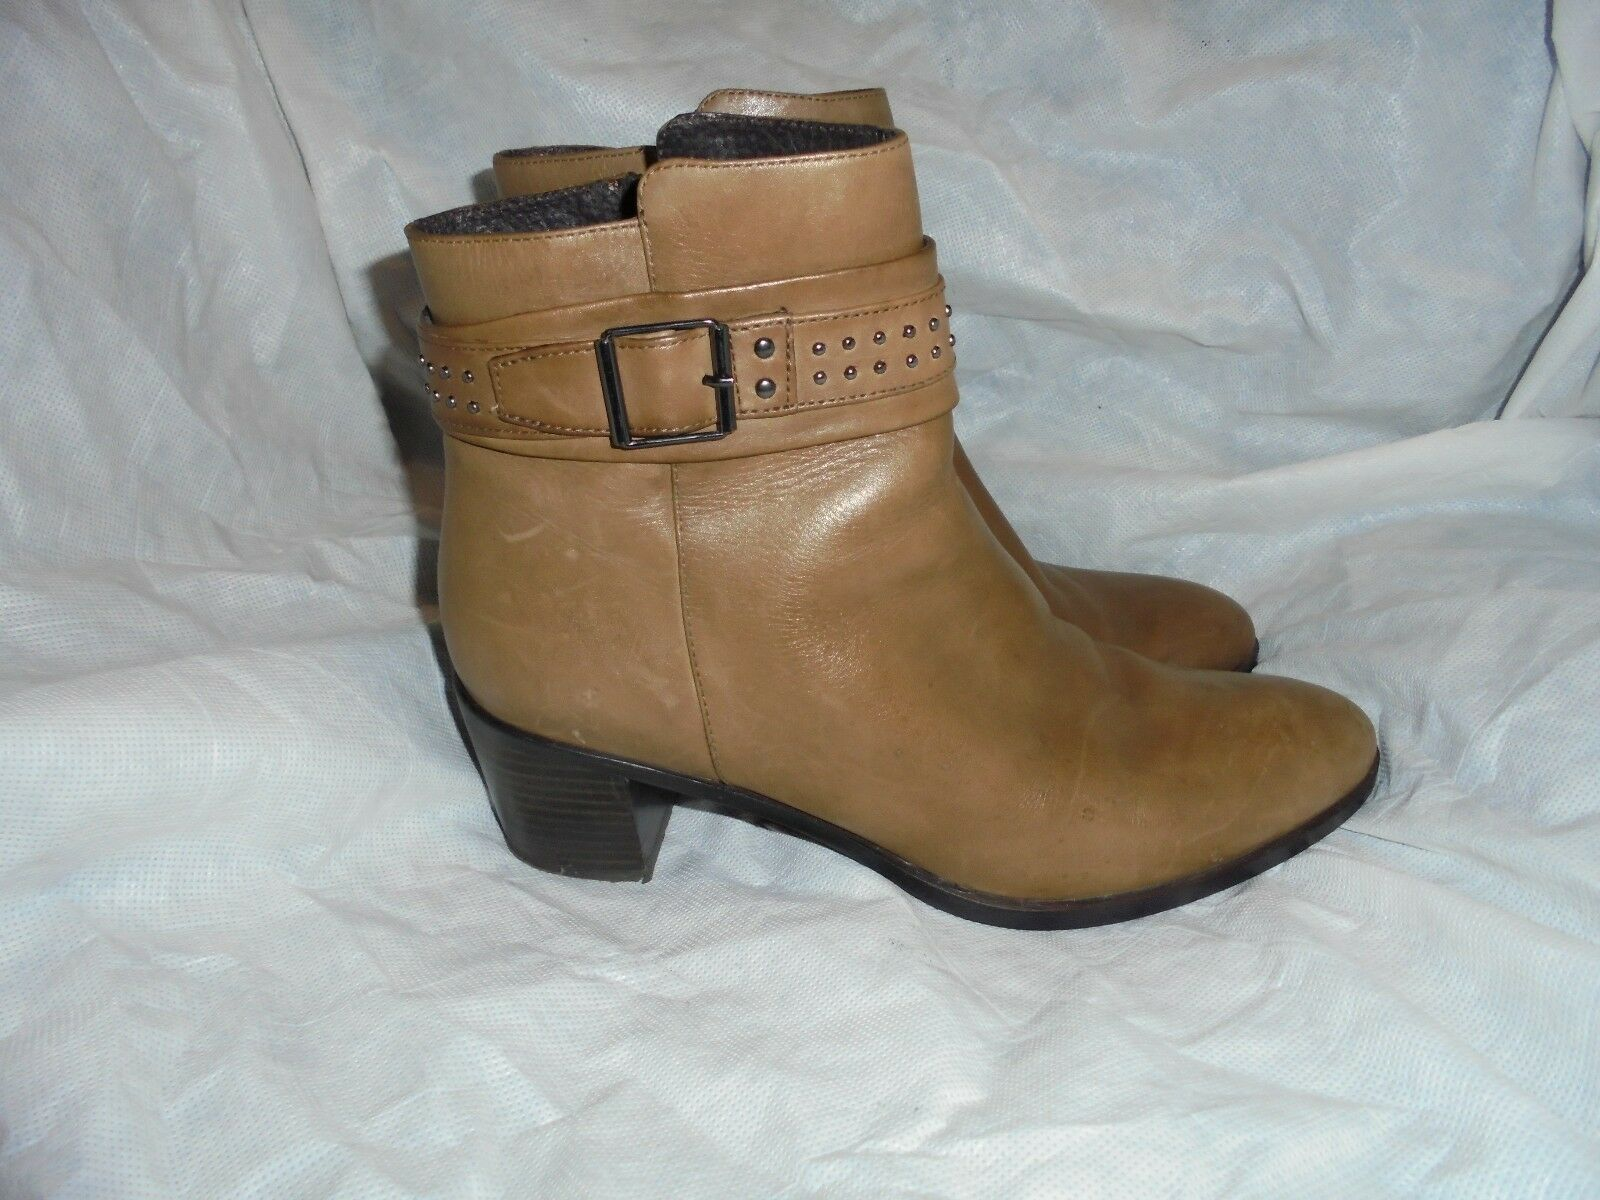 ROBERTO DURVILLE WOMEN'S BROWN LEATHER ZIP UP ANKLE BOOT SIZE VGC